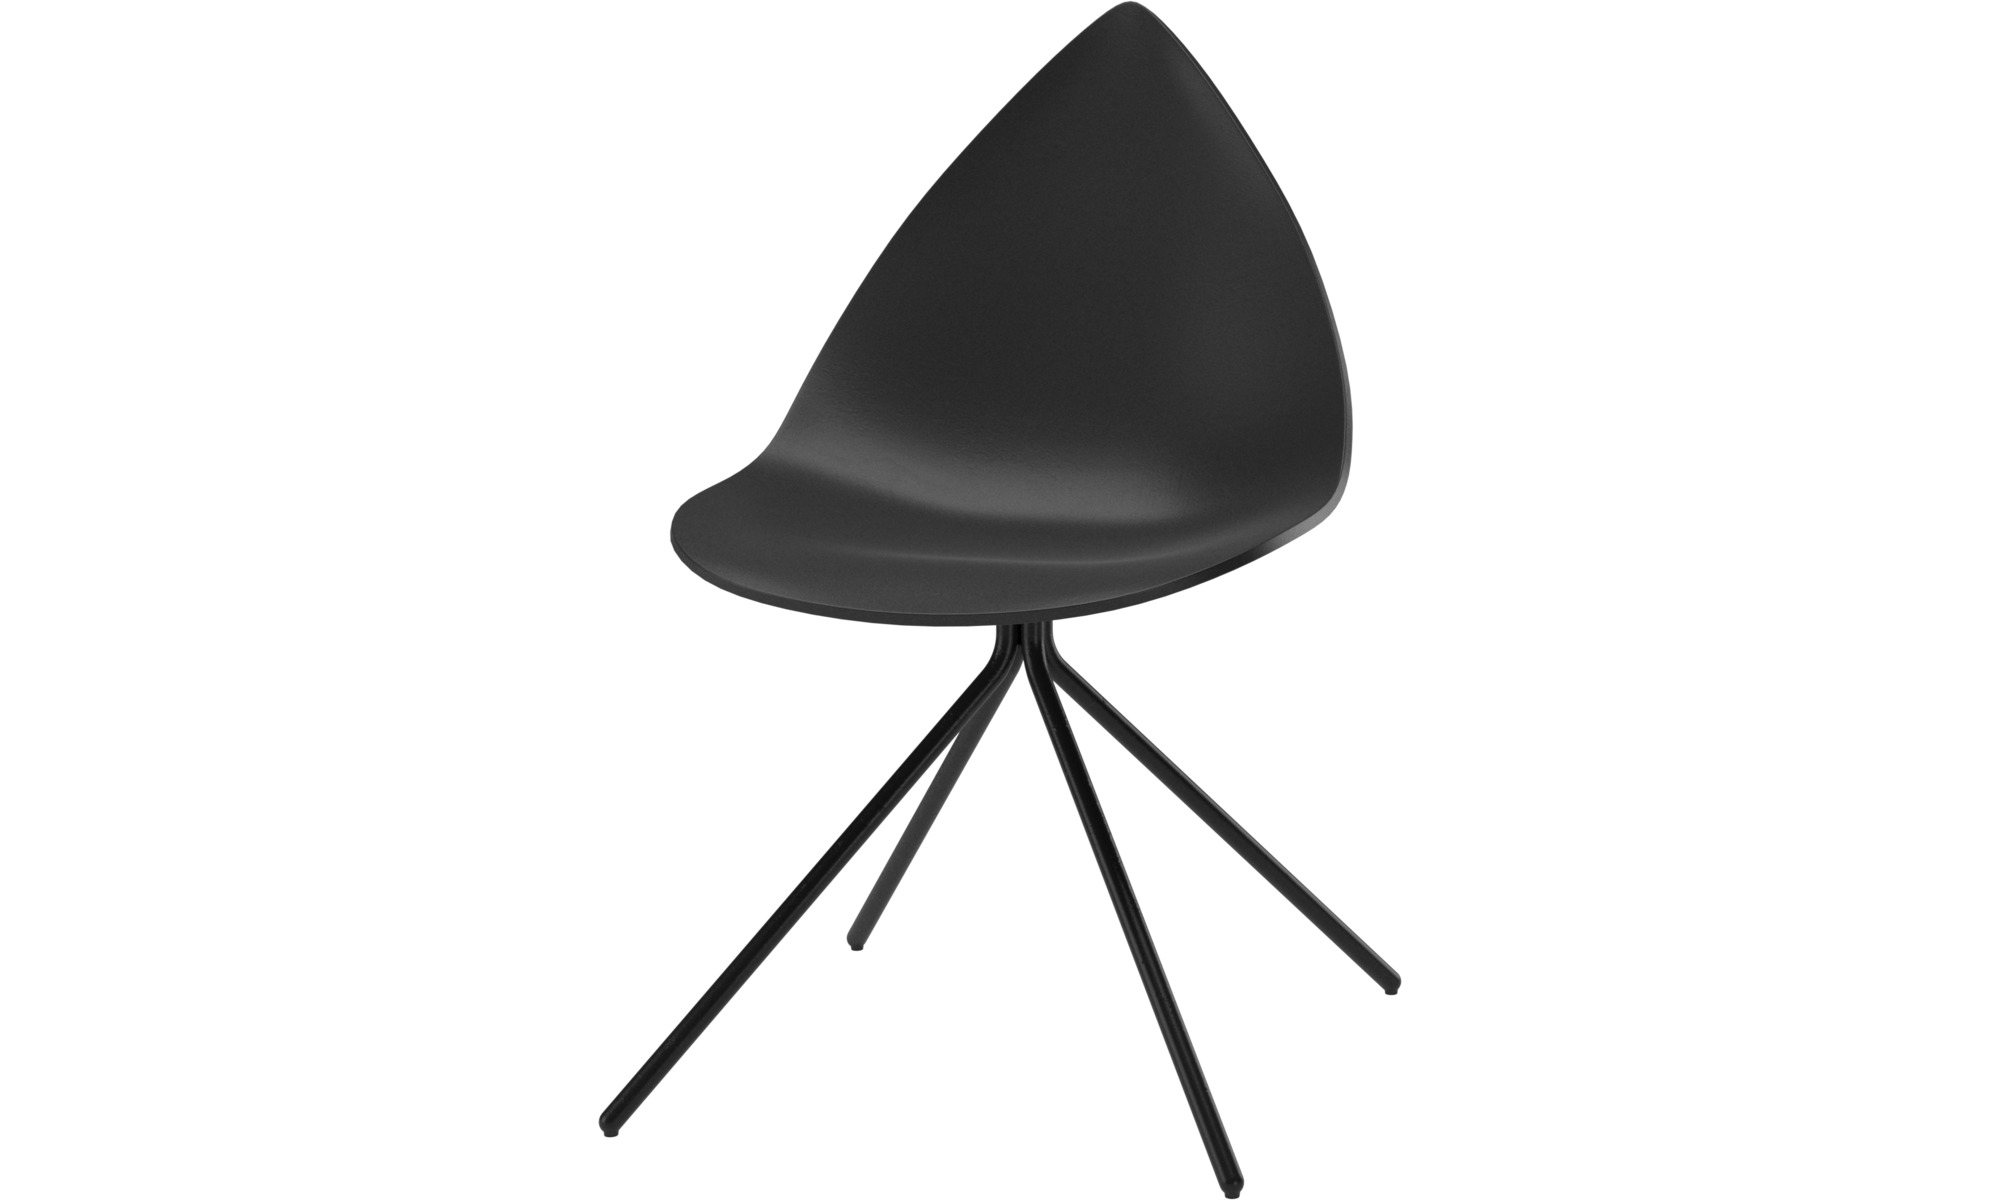 Dining chairs - Ottawa chair - Black - Lacquered